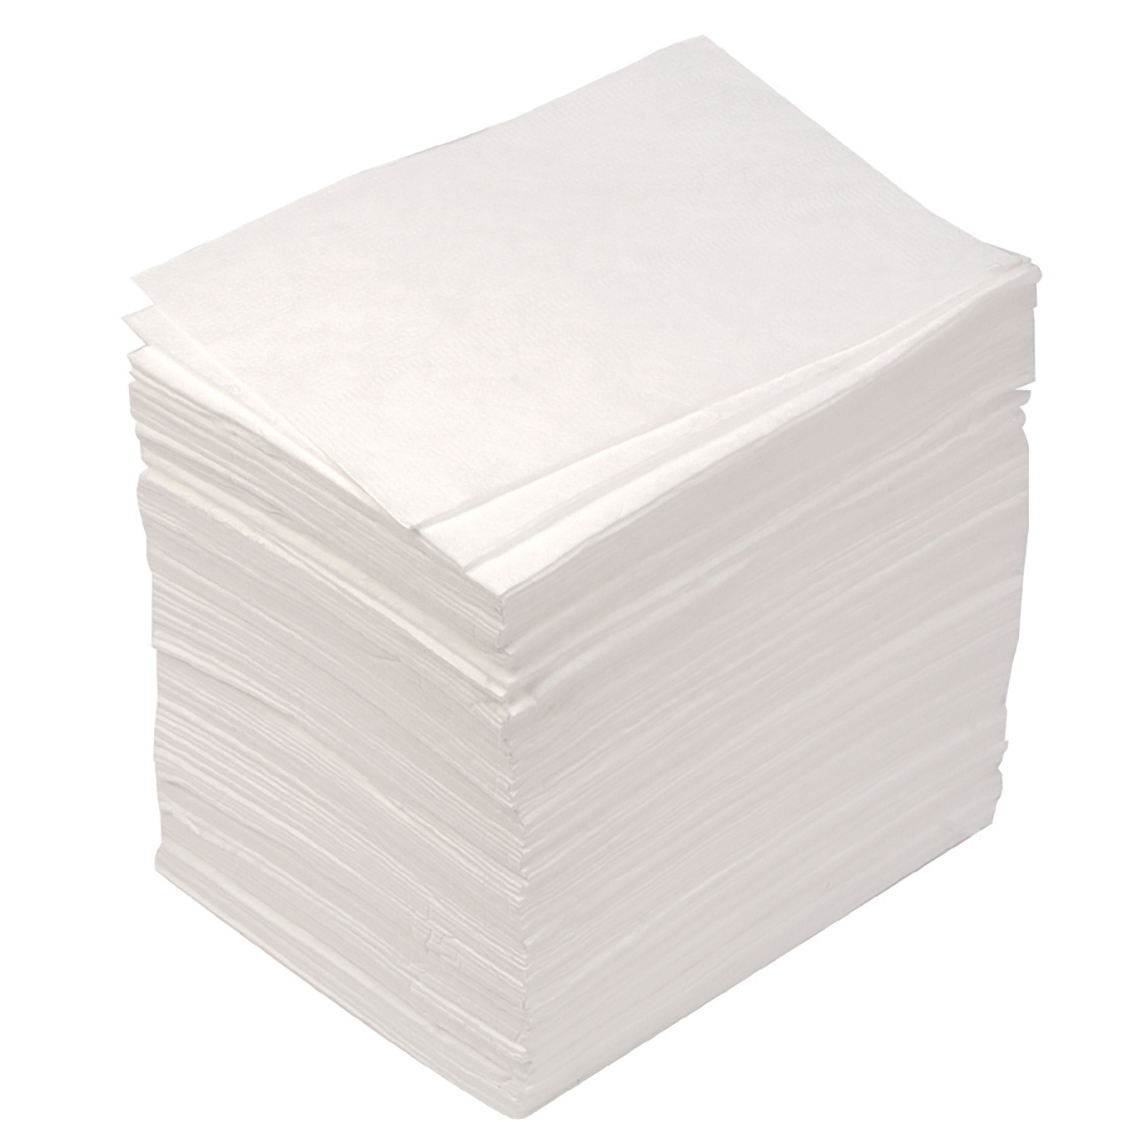 JSP Chemical Cleaning Pads Oil Only Pad Absorbent Meltblown Polypropylene Ref PJQ002-500-000 Pack 100